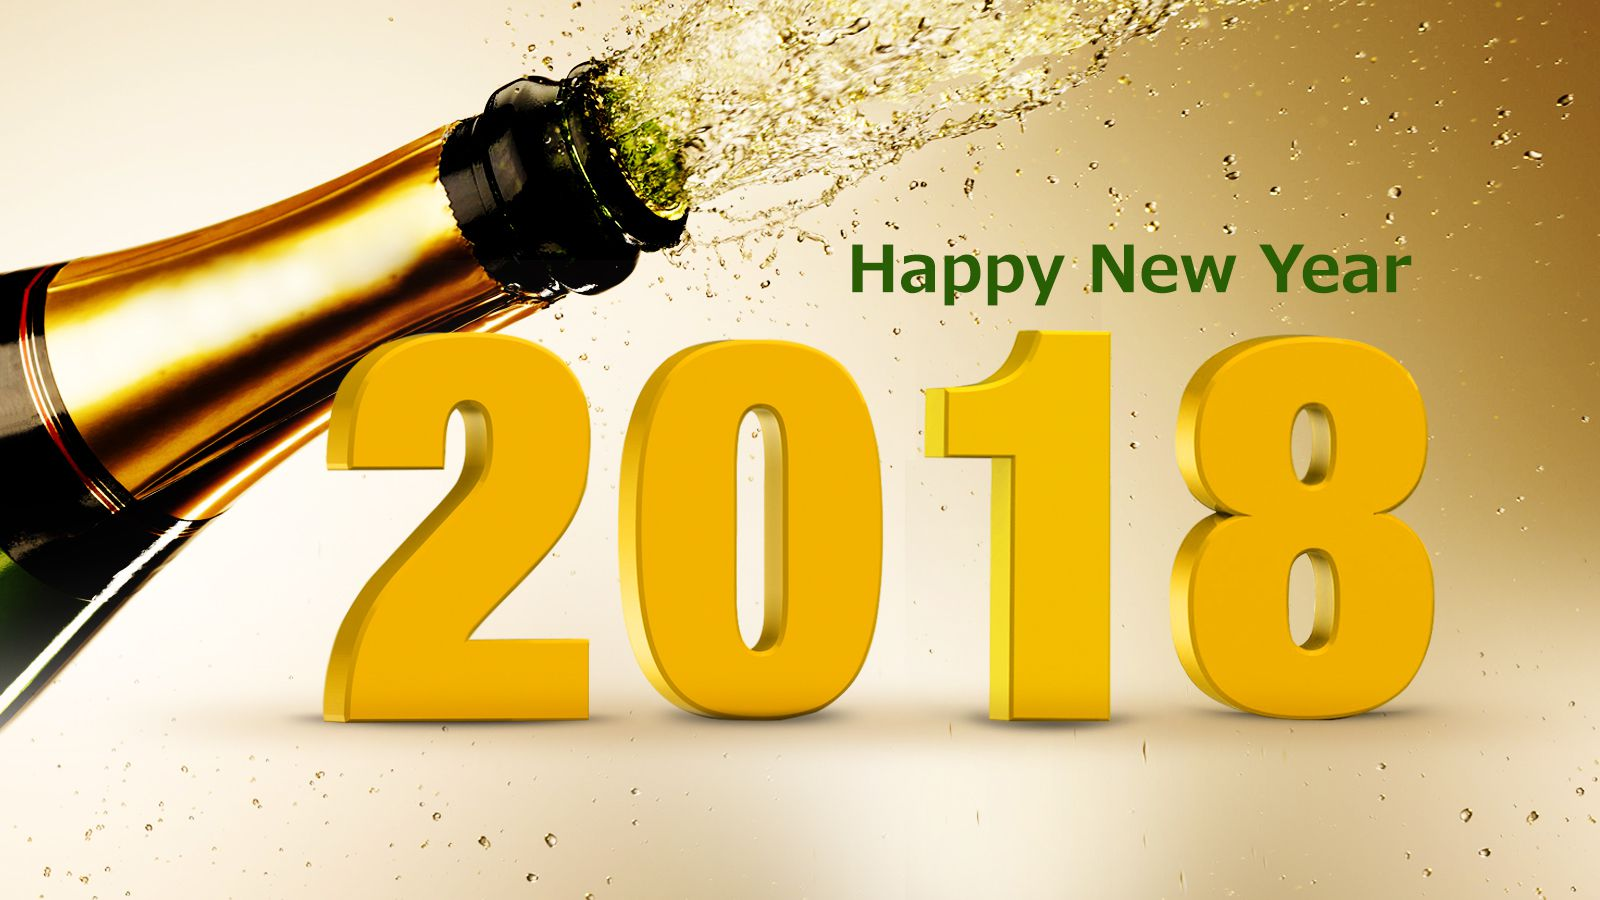 Happy New Year 2018 Images, Photos & Wallpapers